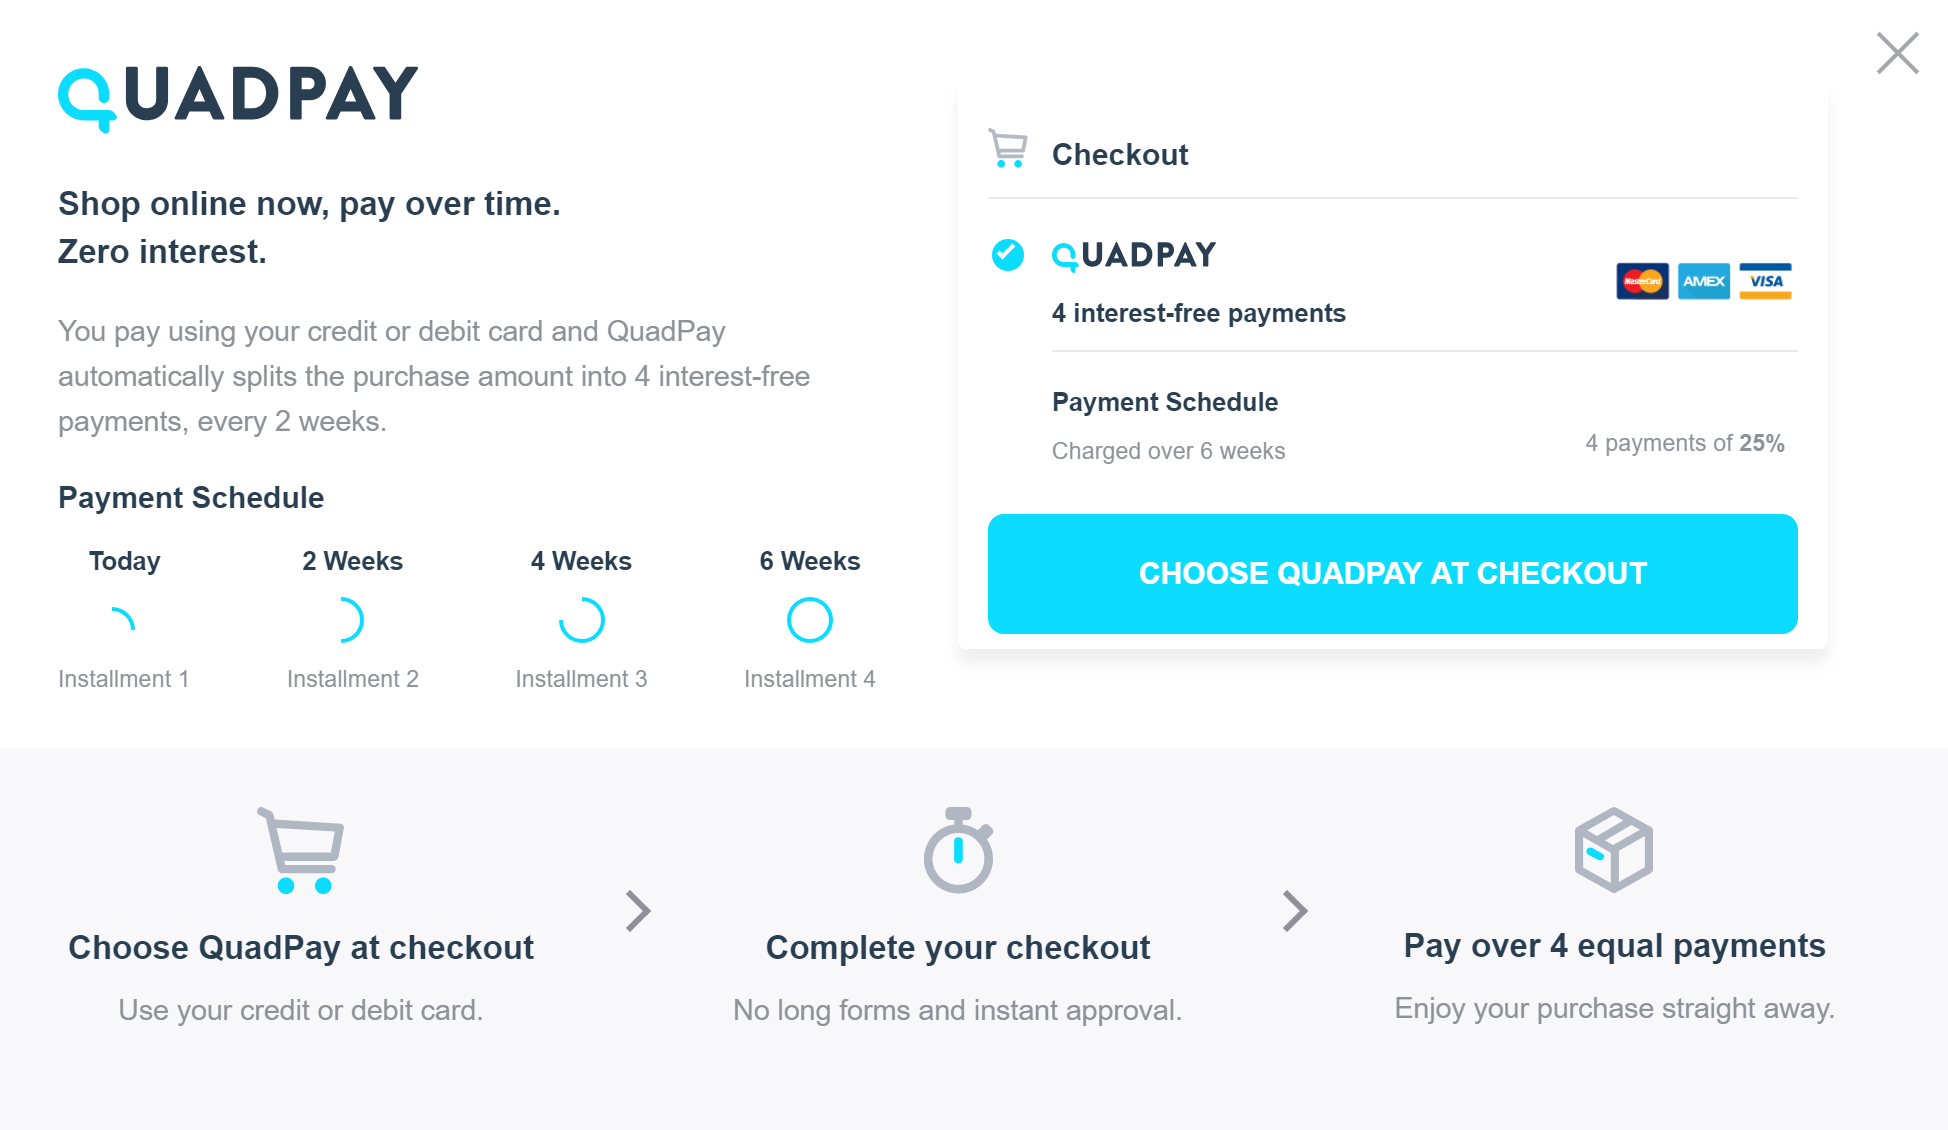 QuadPay Customer Service 1-888-432-7605 Phone Number